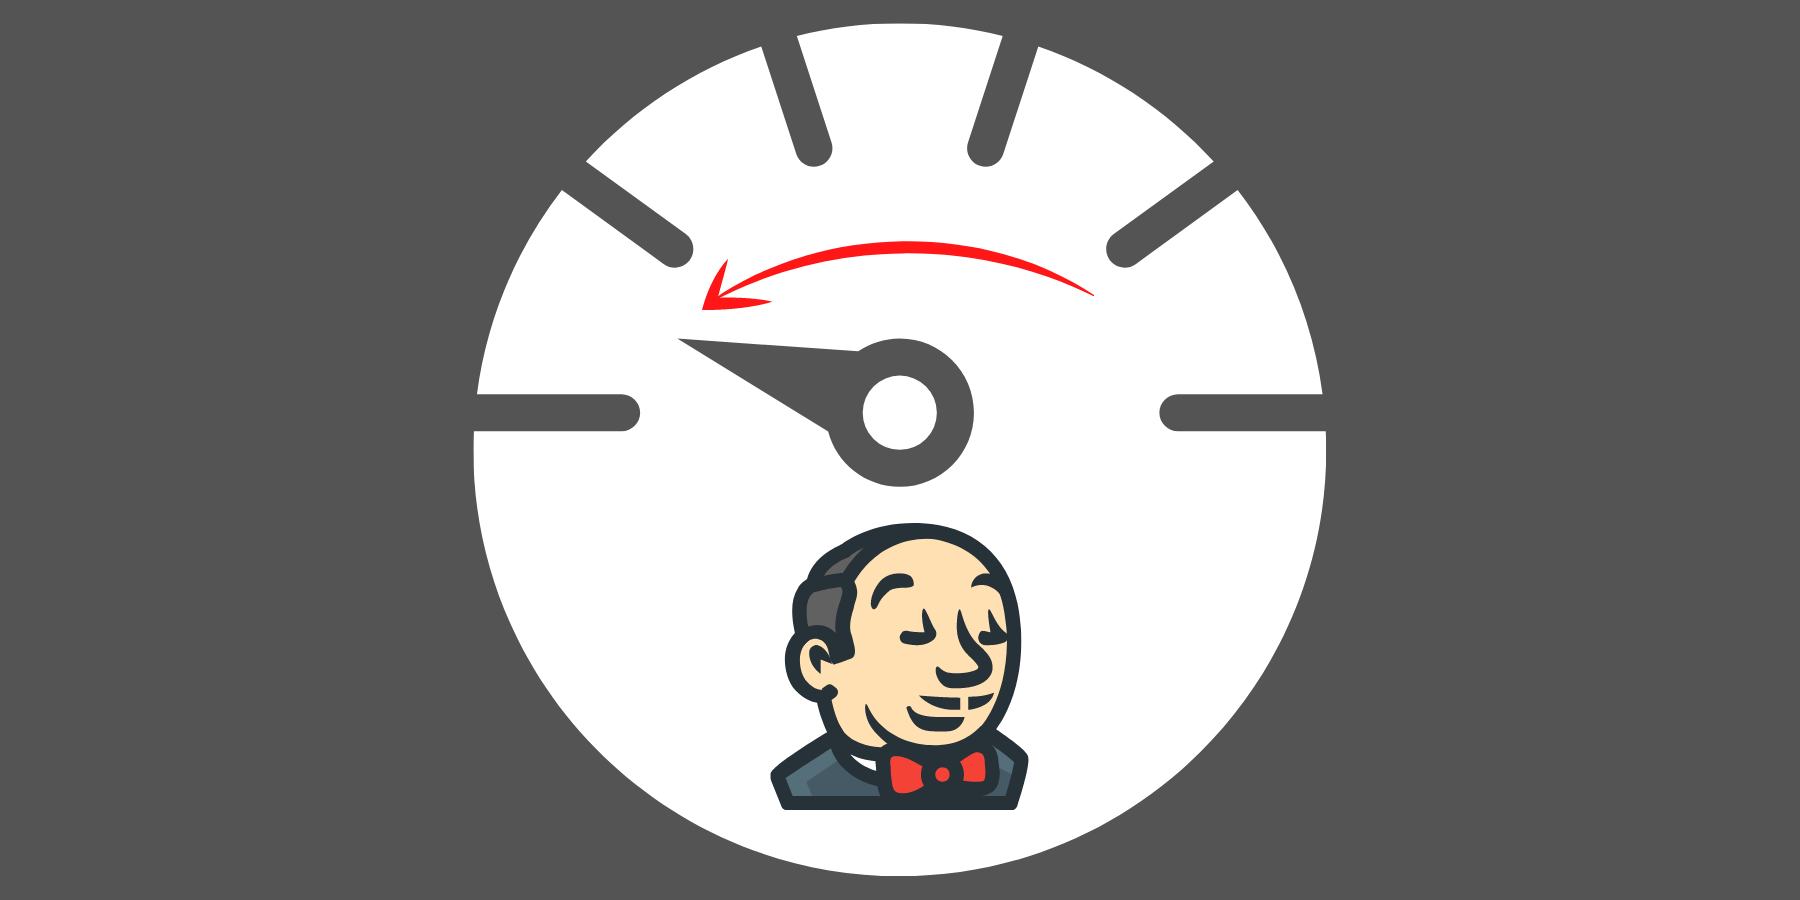 Does Jenkins Scale? Nope! Here's 4 Reasons Why.